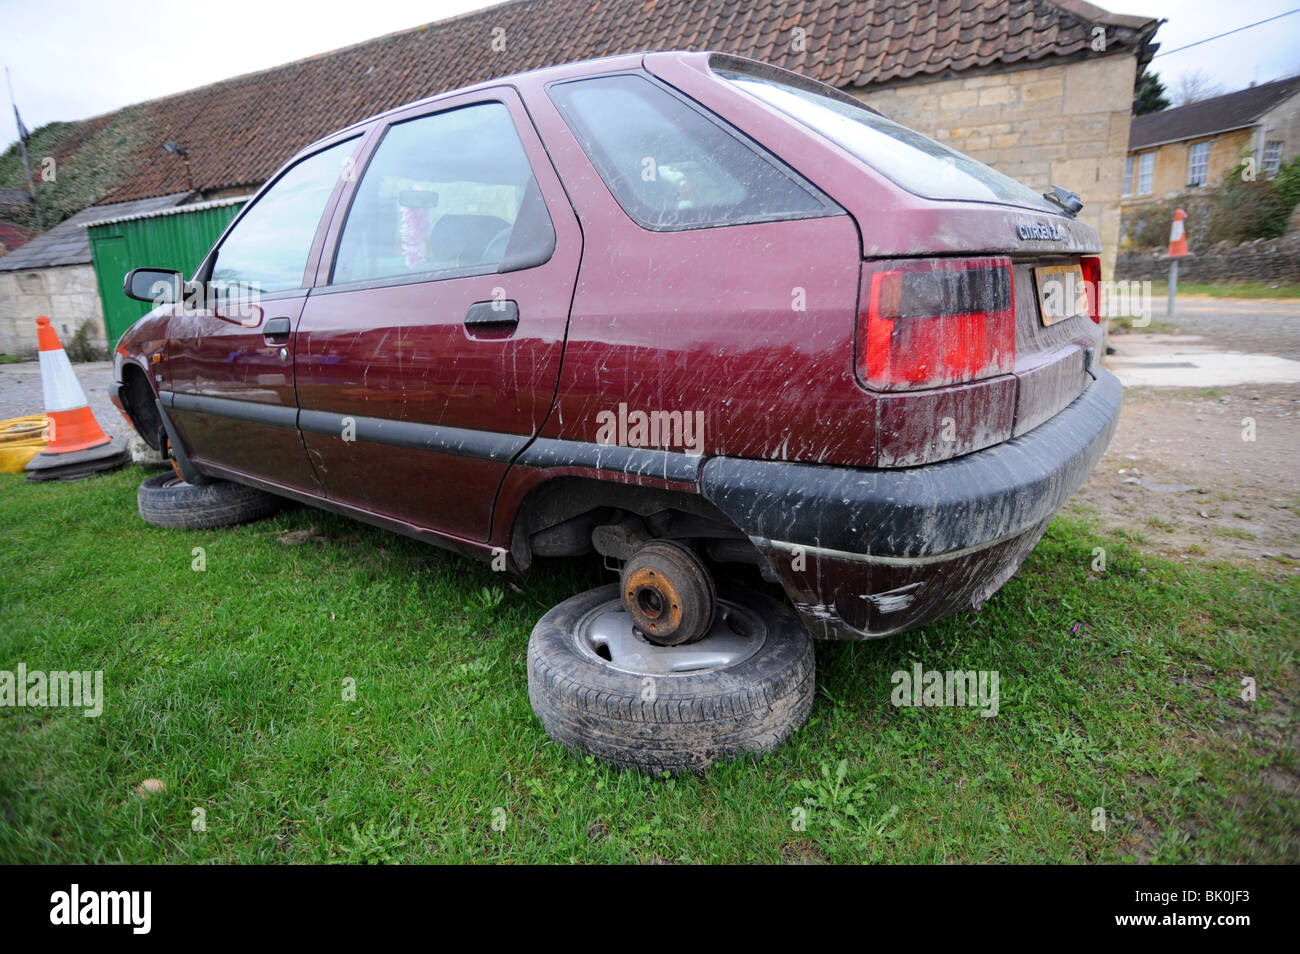 Old Car With No Wheels Stock Photo 28903367 Alamy